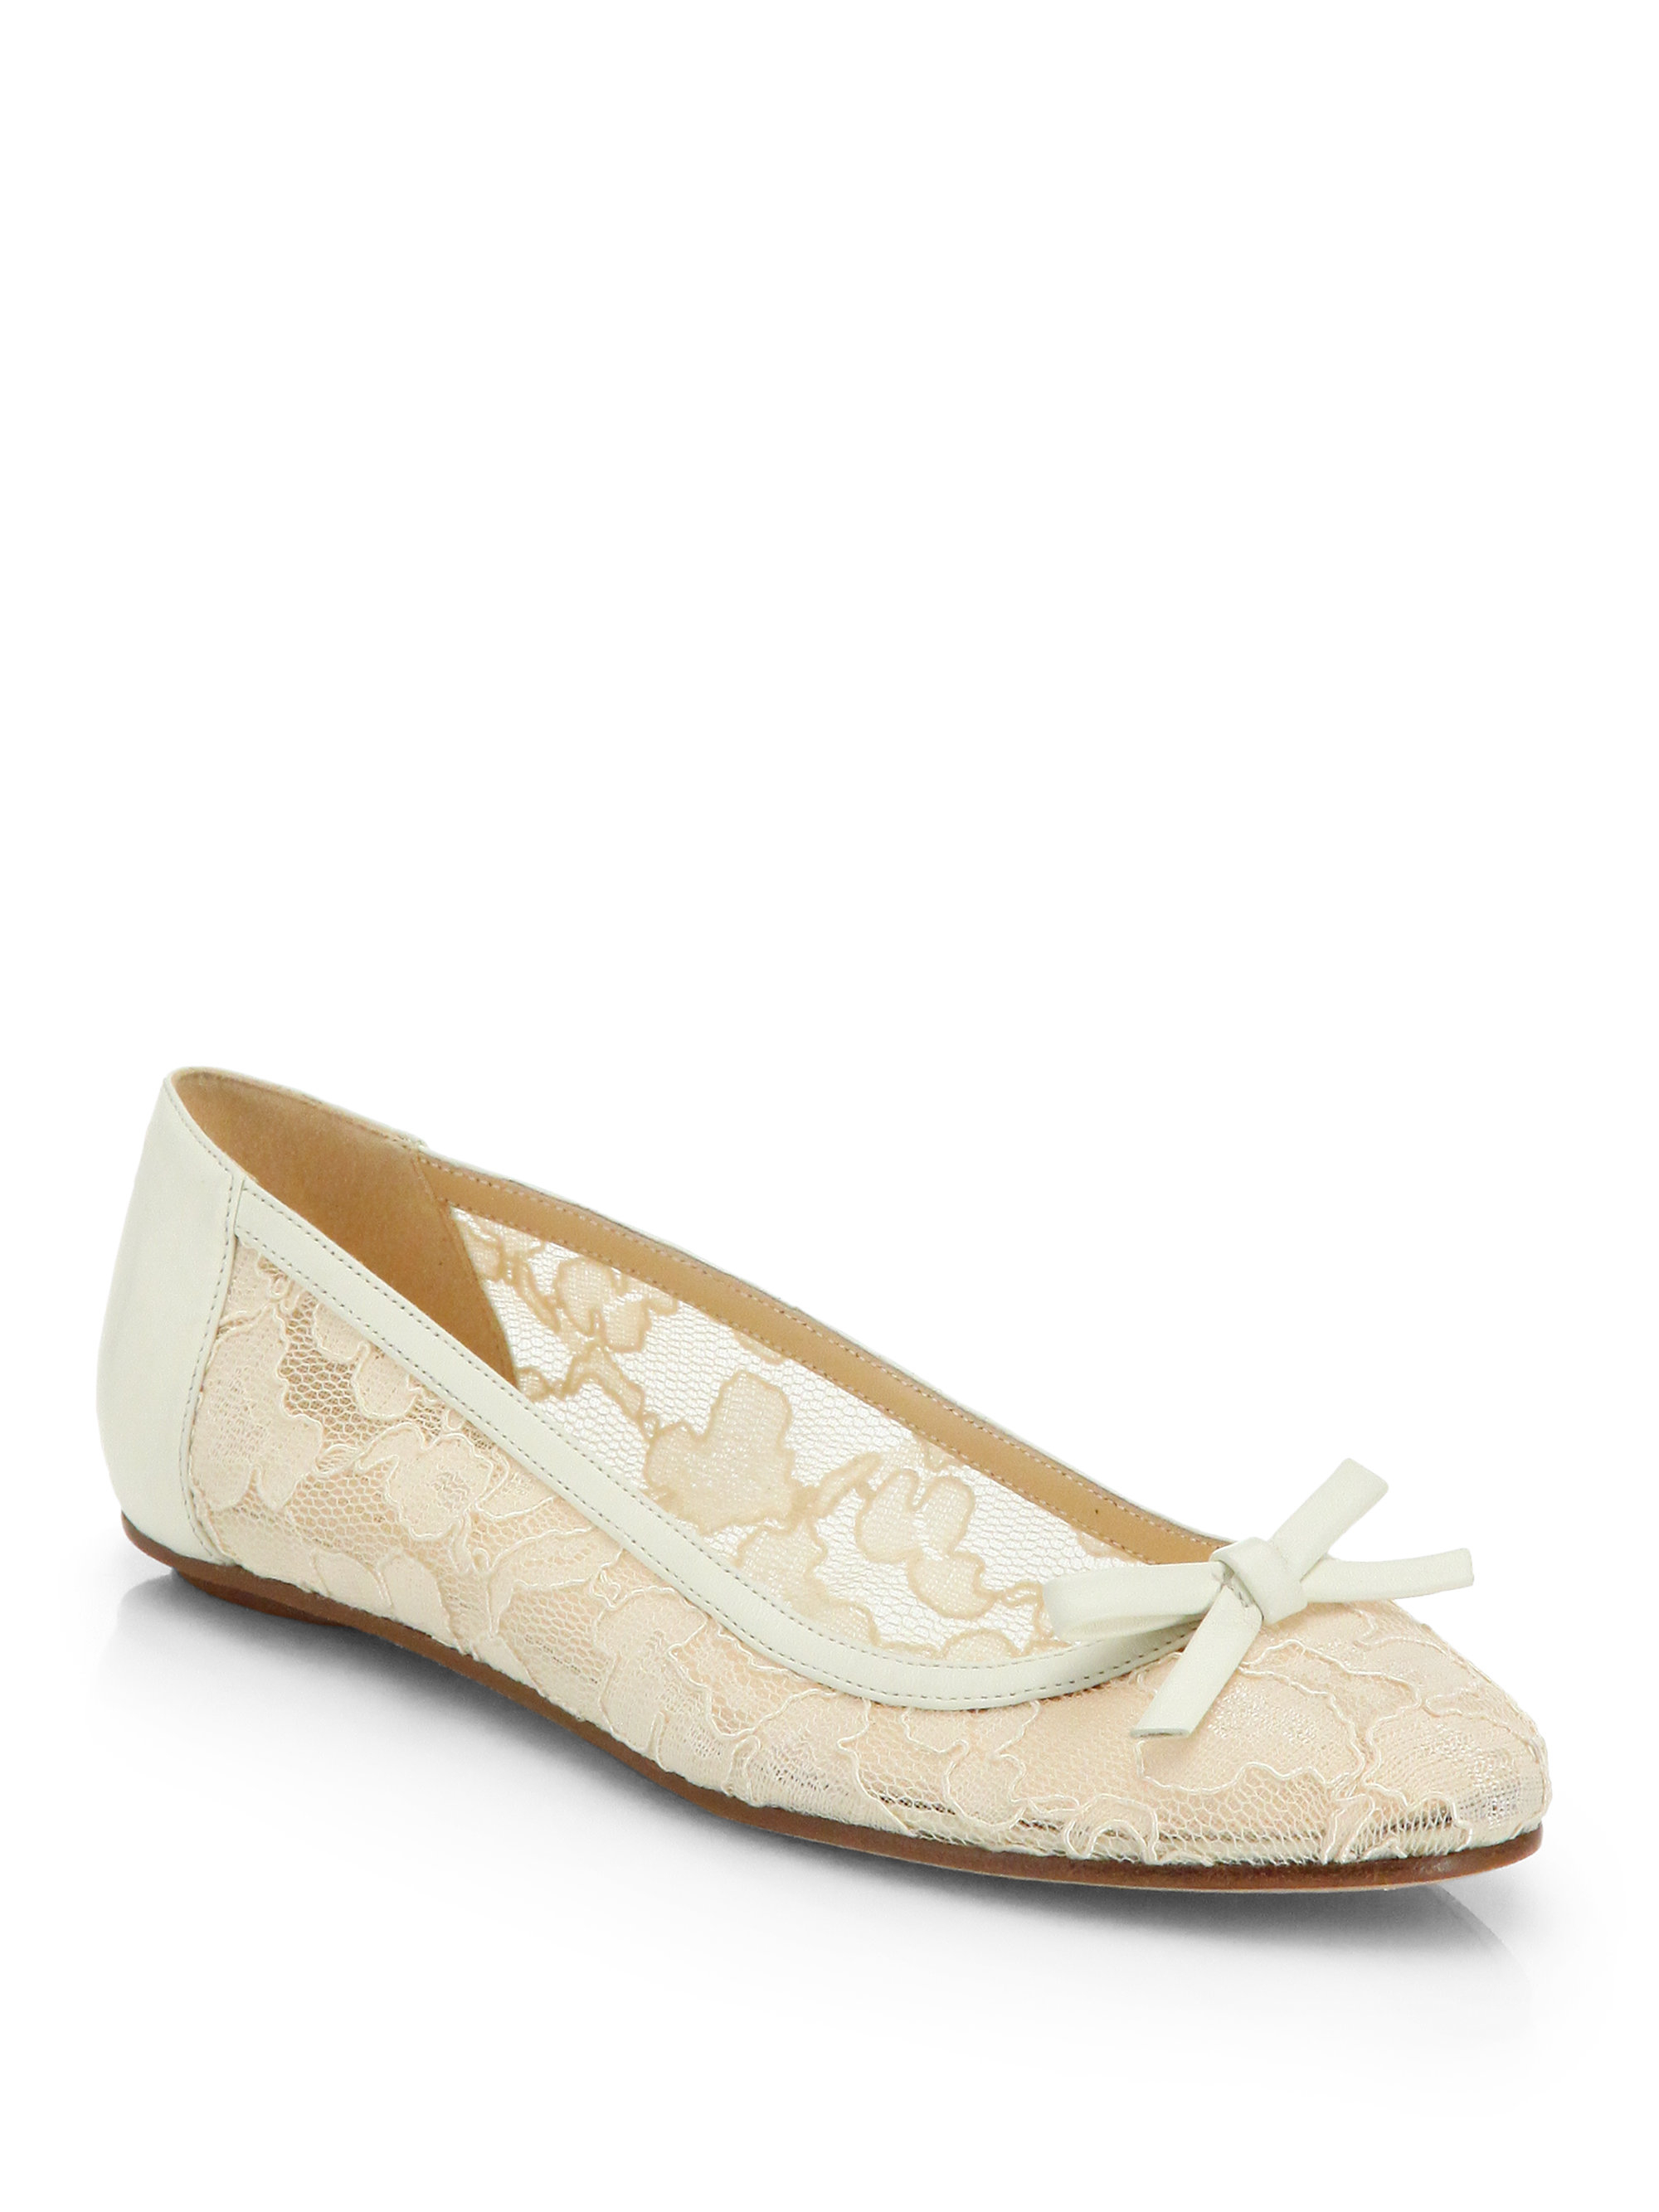 Wedding Table Lace Ballet Flats kate spade new york banner leather lace ballet flats in white lyst gallery